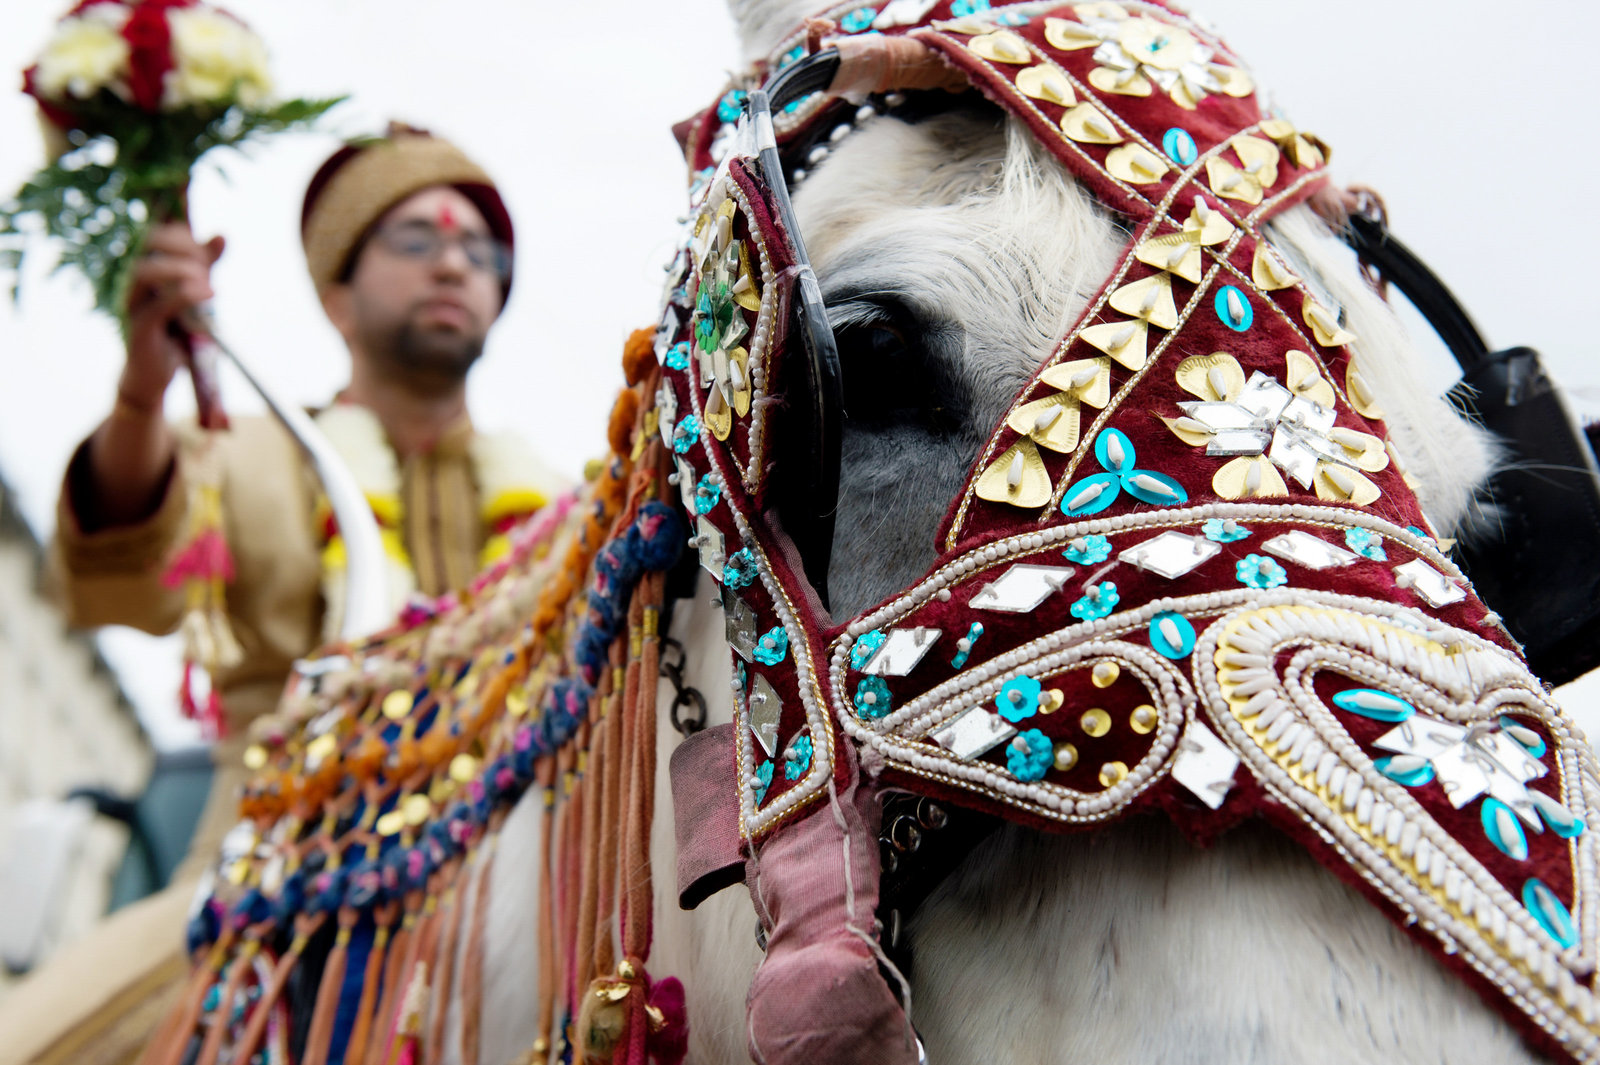 the groom rides a horse during the barat